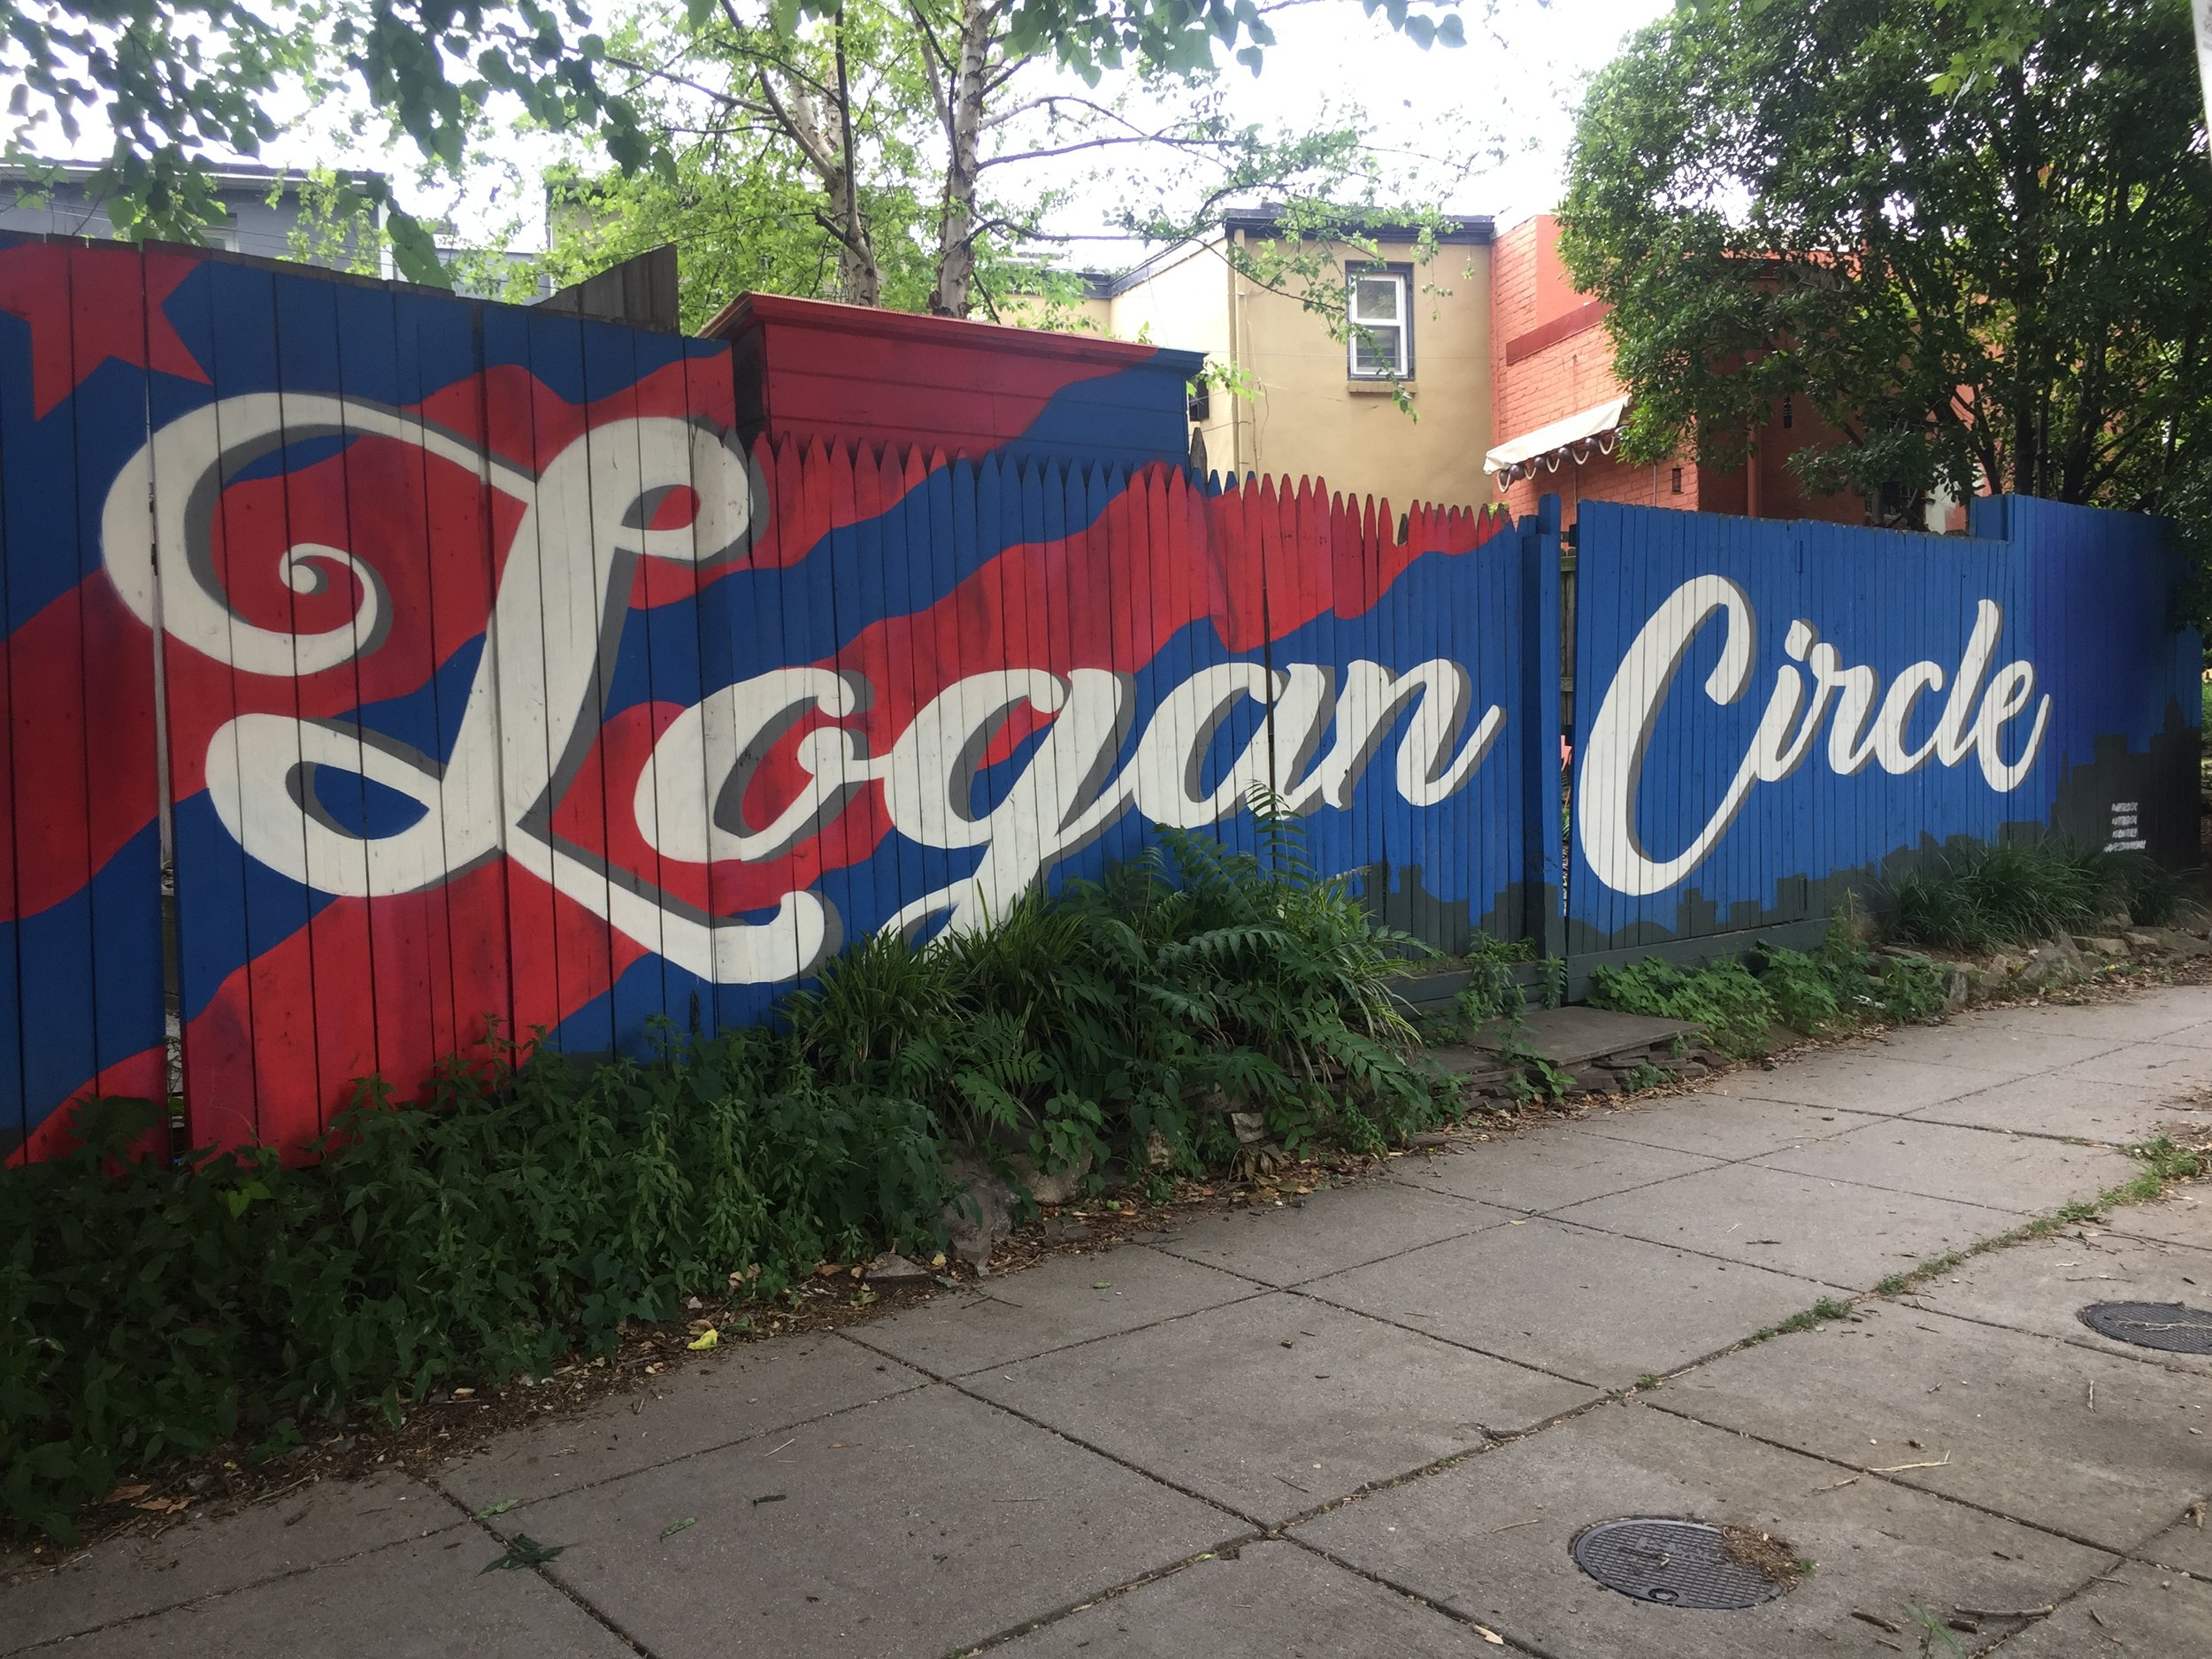 Logan Circle Fence Mural | Washington, D.C.